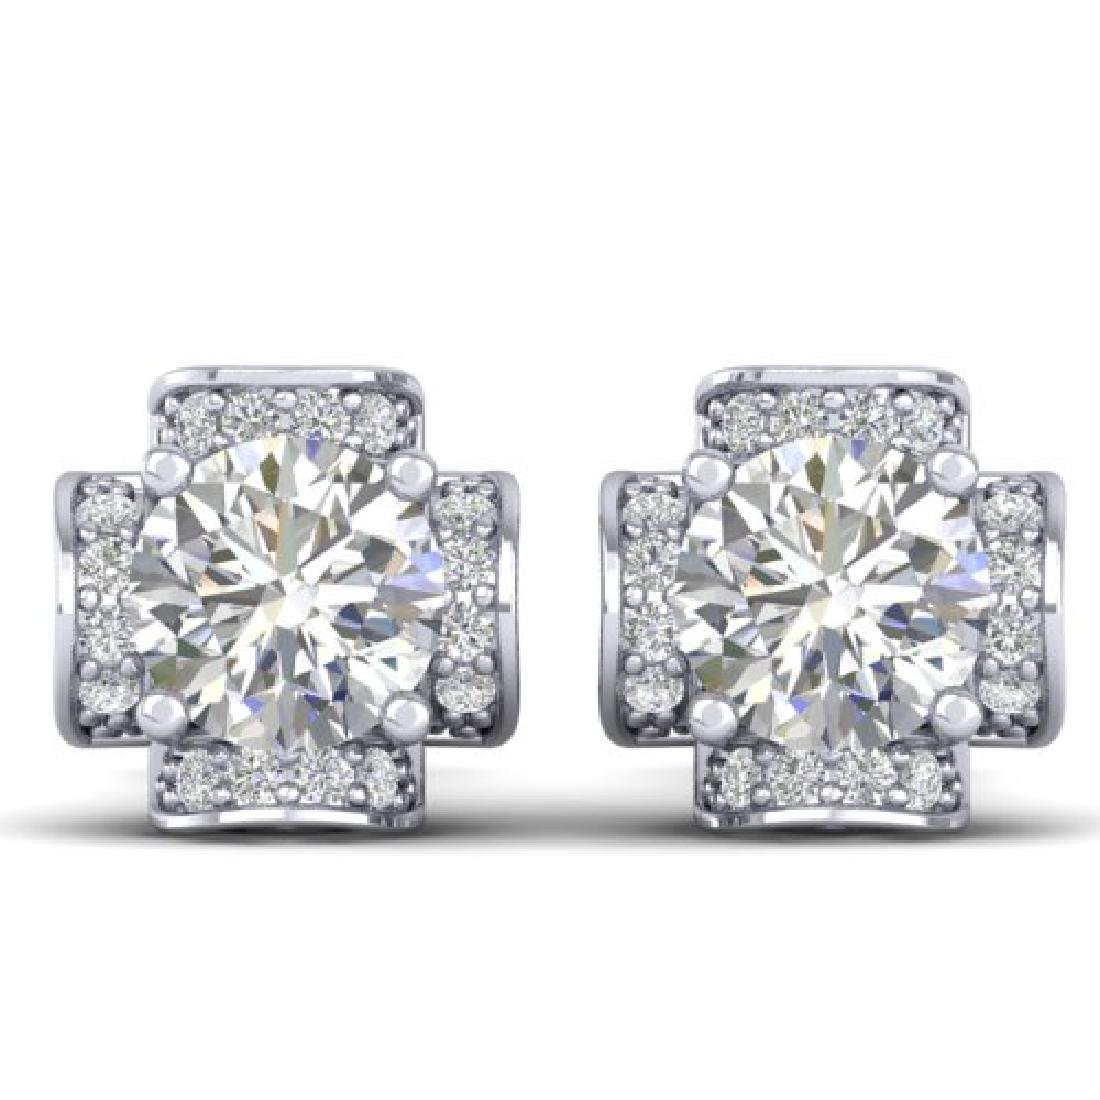 1.85 CTW Certified VS/SI Diamond Art Deco Stud Earrings